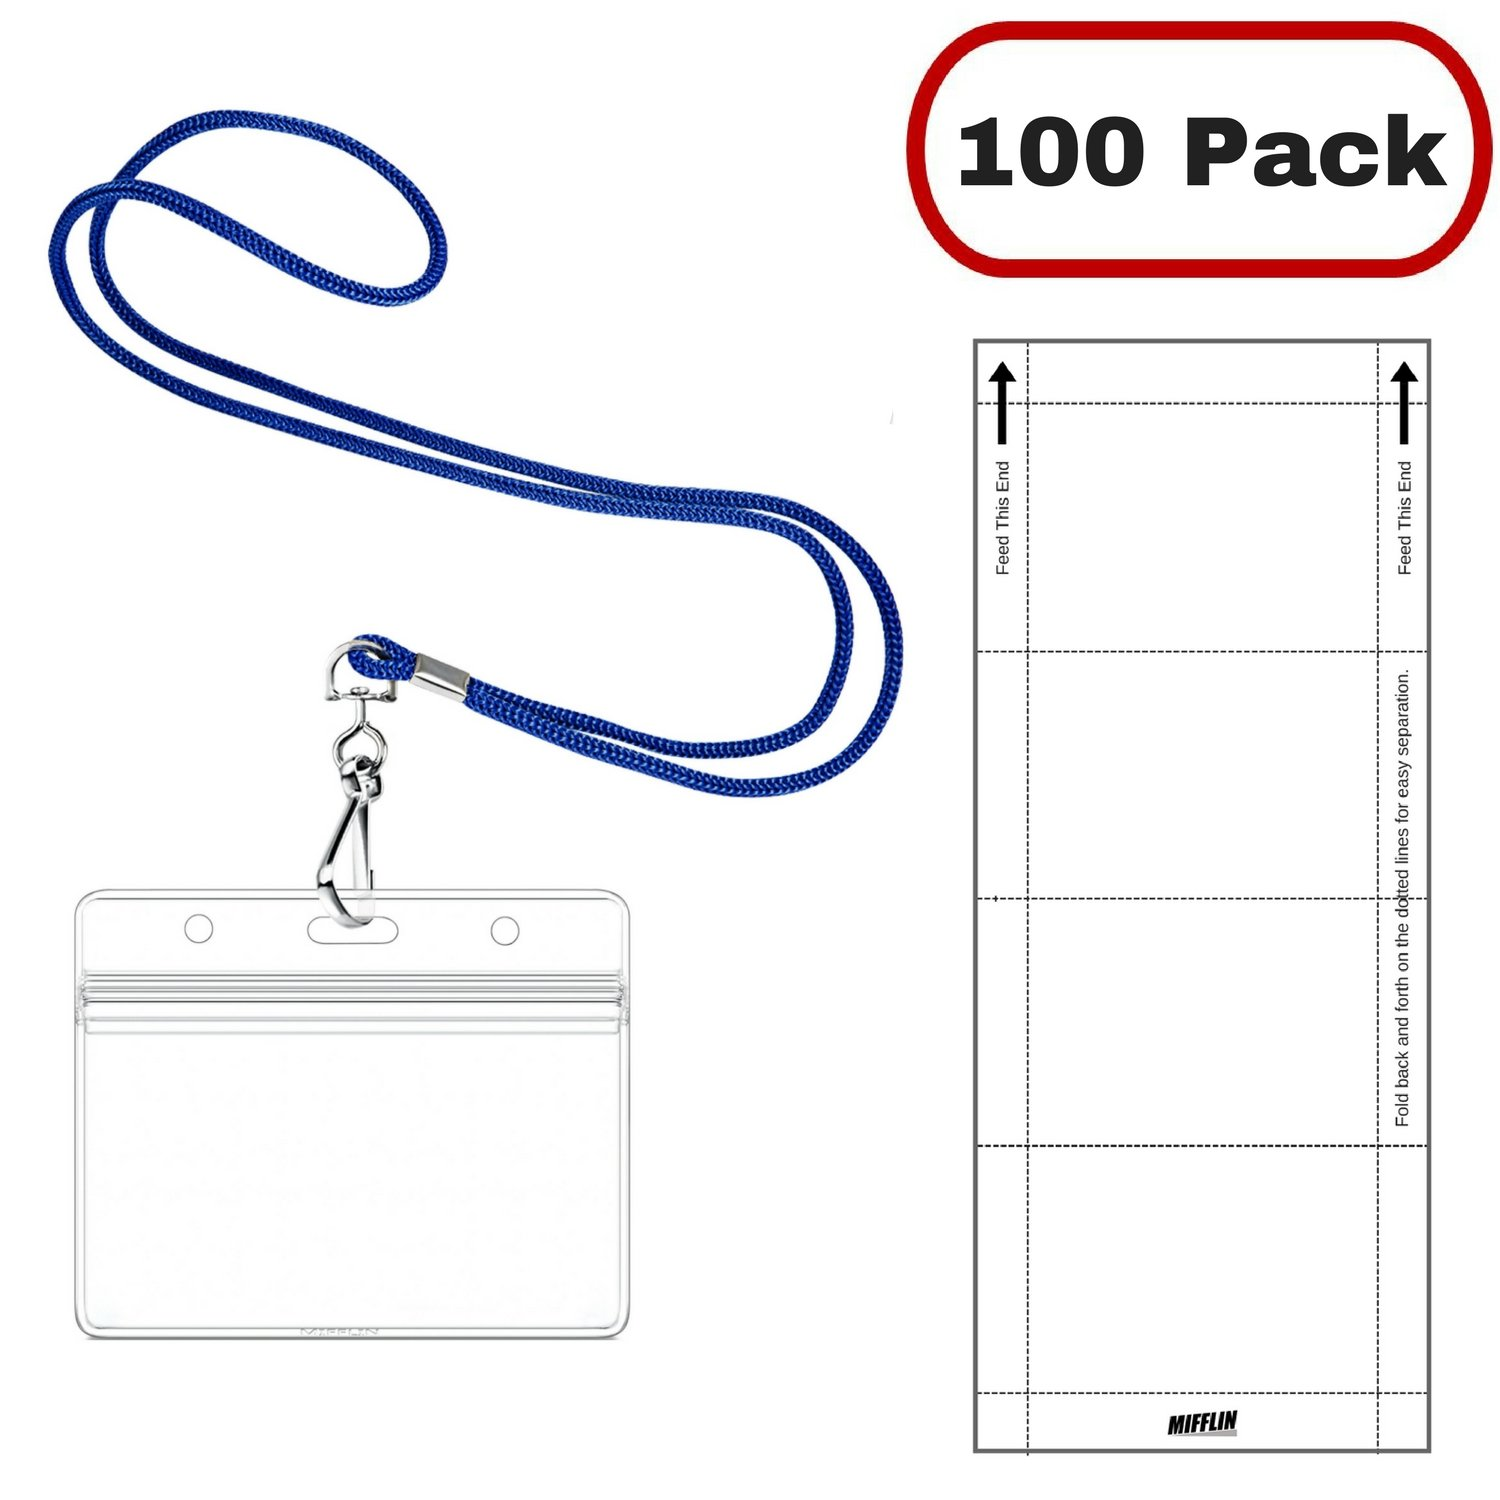 Mifflin Horizontal Name Badge Holders Lanyards And Paper Inserts Piece Kits Royal Blue Pack Office Products